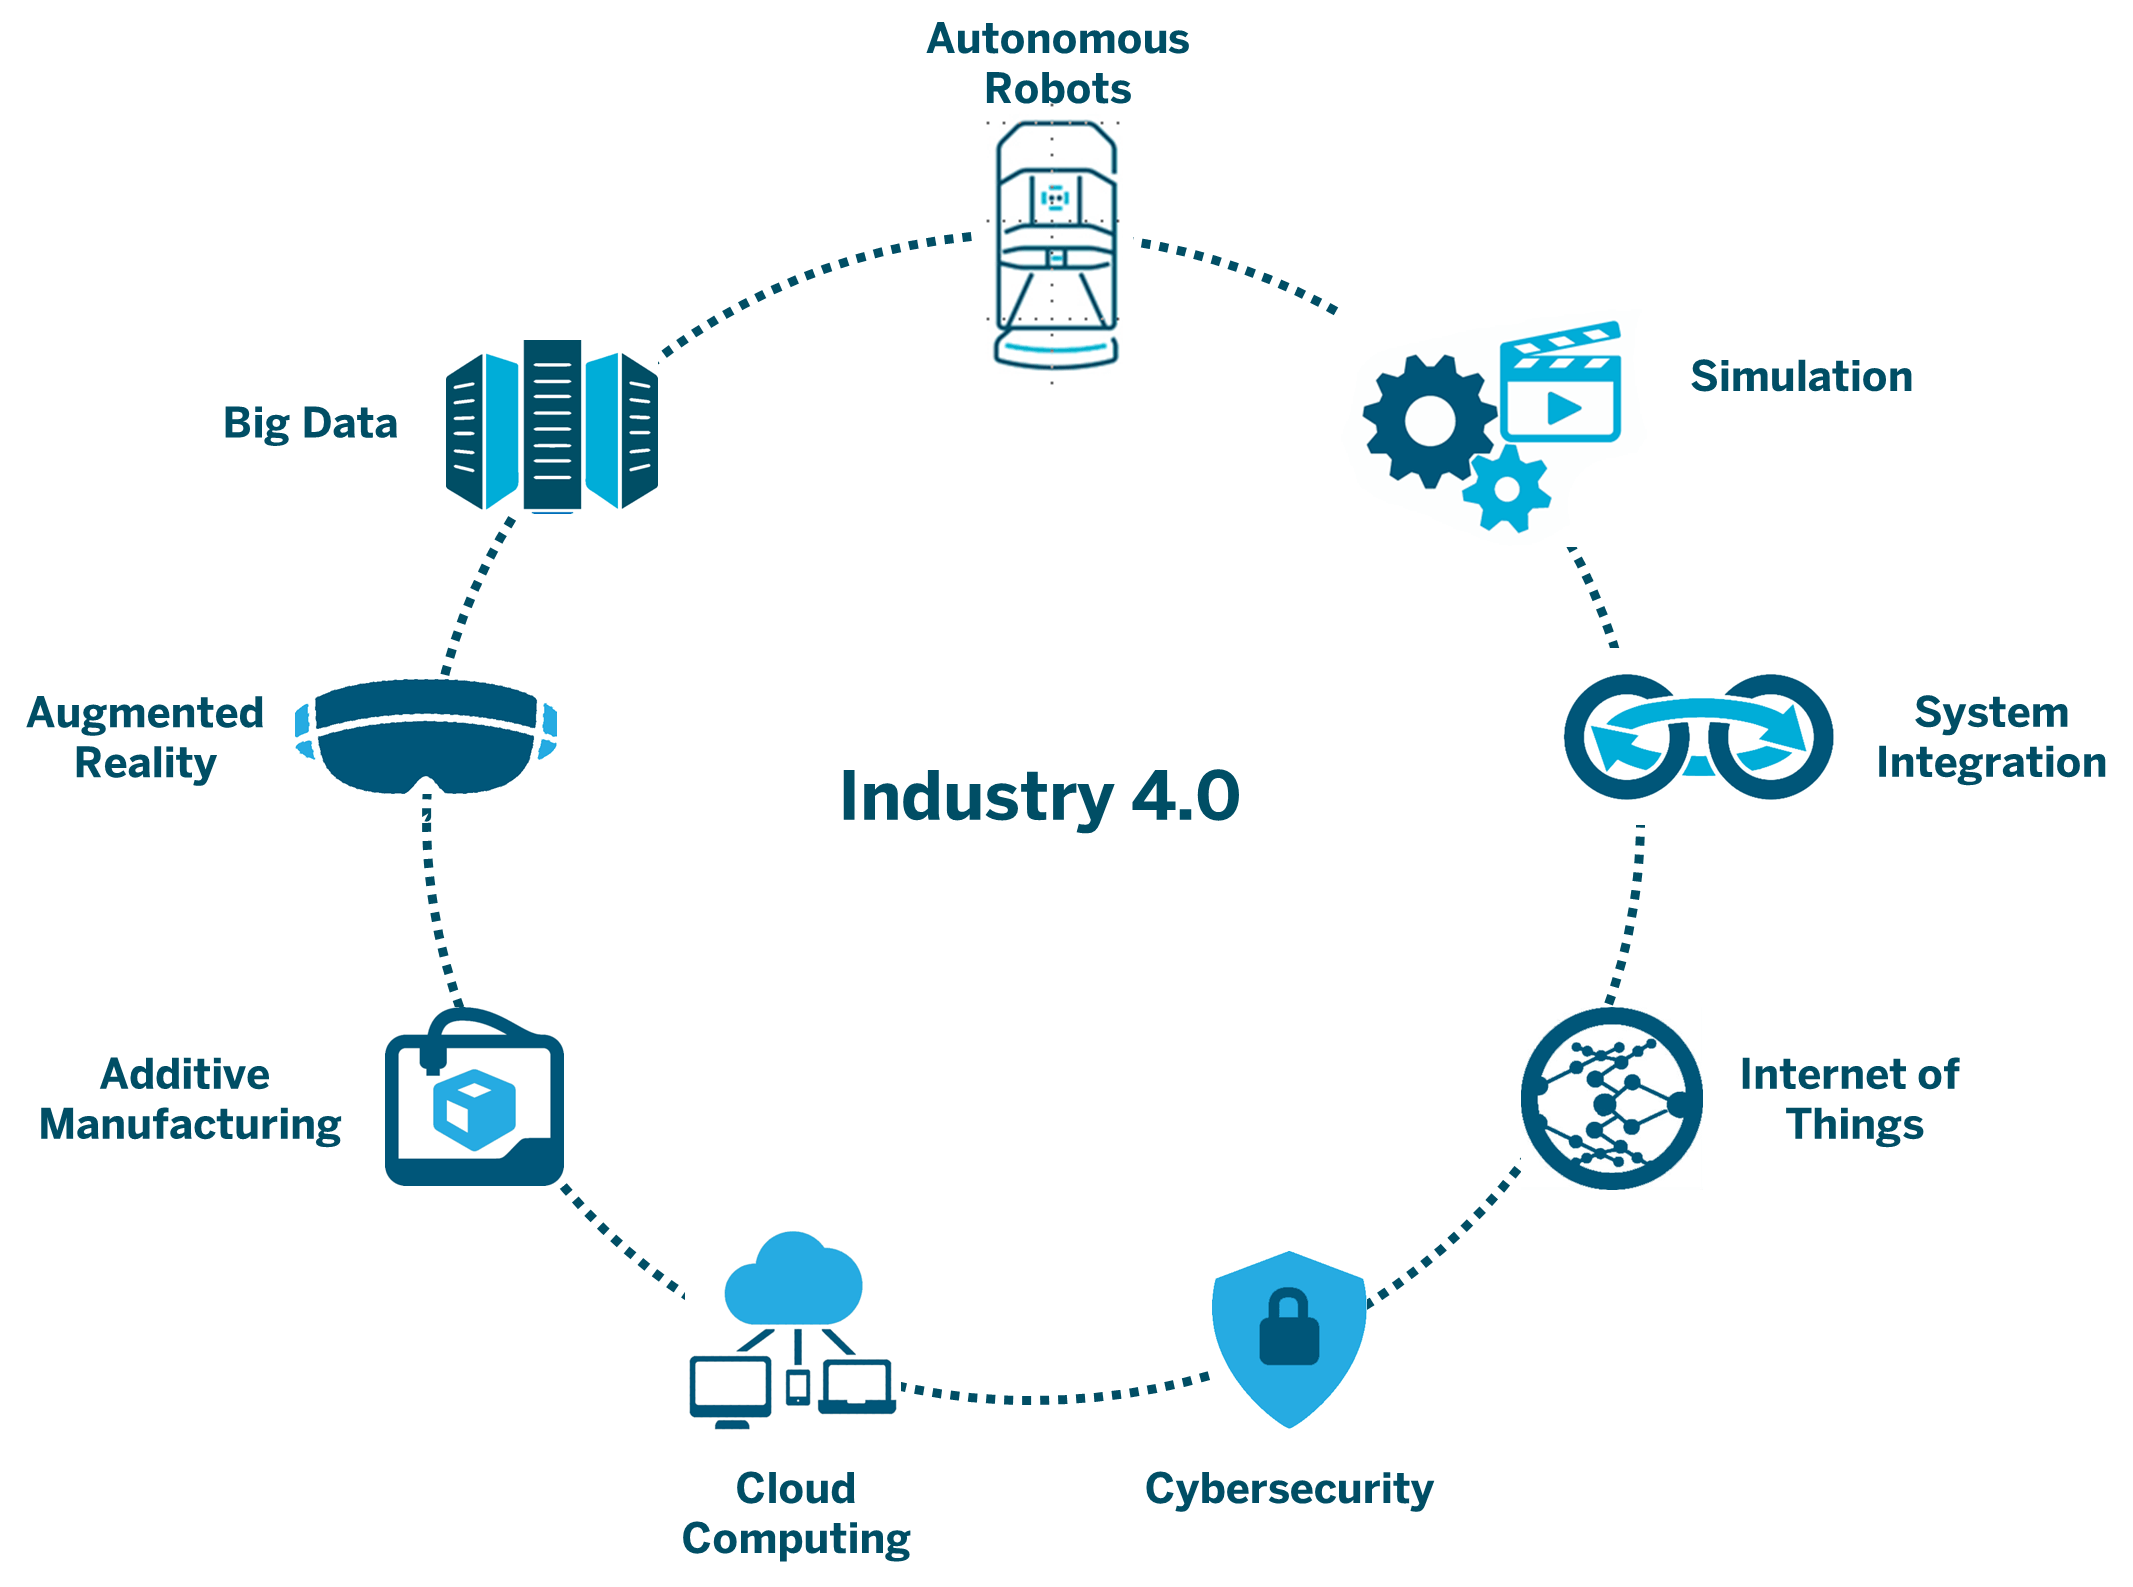 Industry 4.0 and Mobile Robots - Connecting Islands of Automation